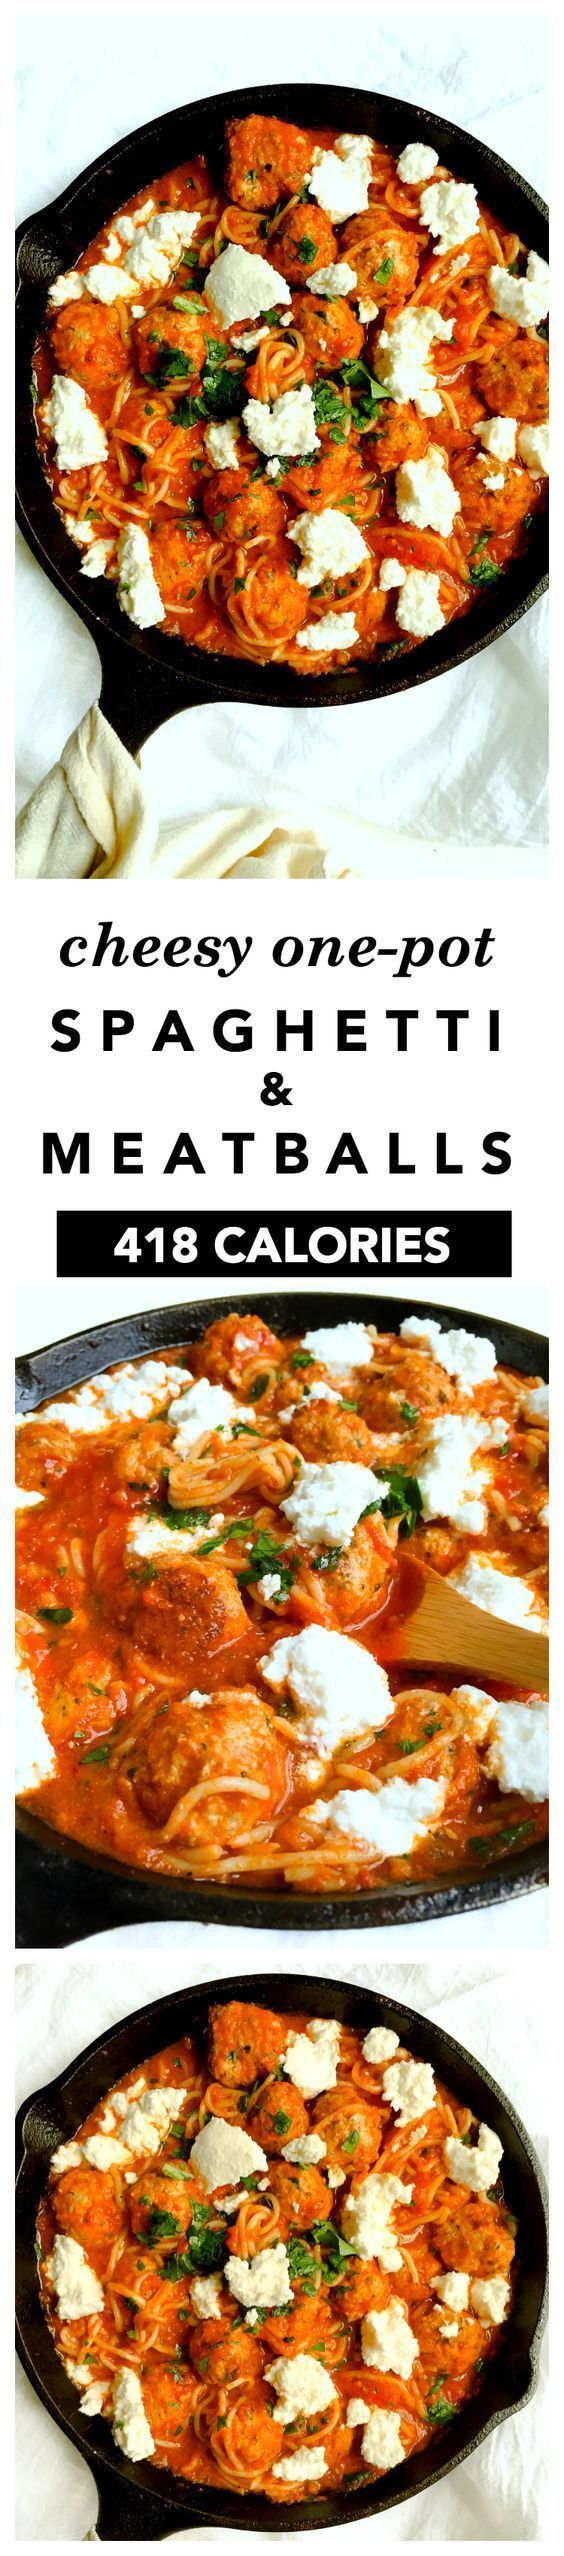 spaghetti and meatballs recipeCheesy One Pot Spaghetti and Meatballs ...